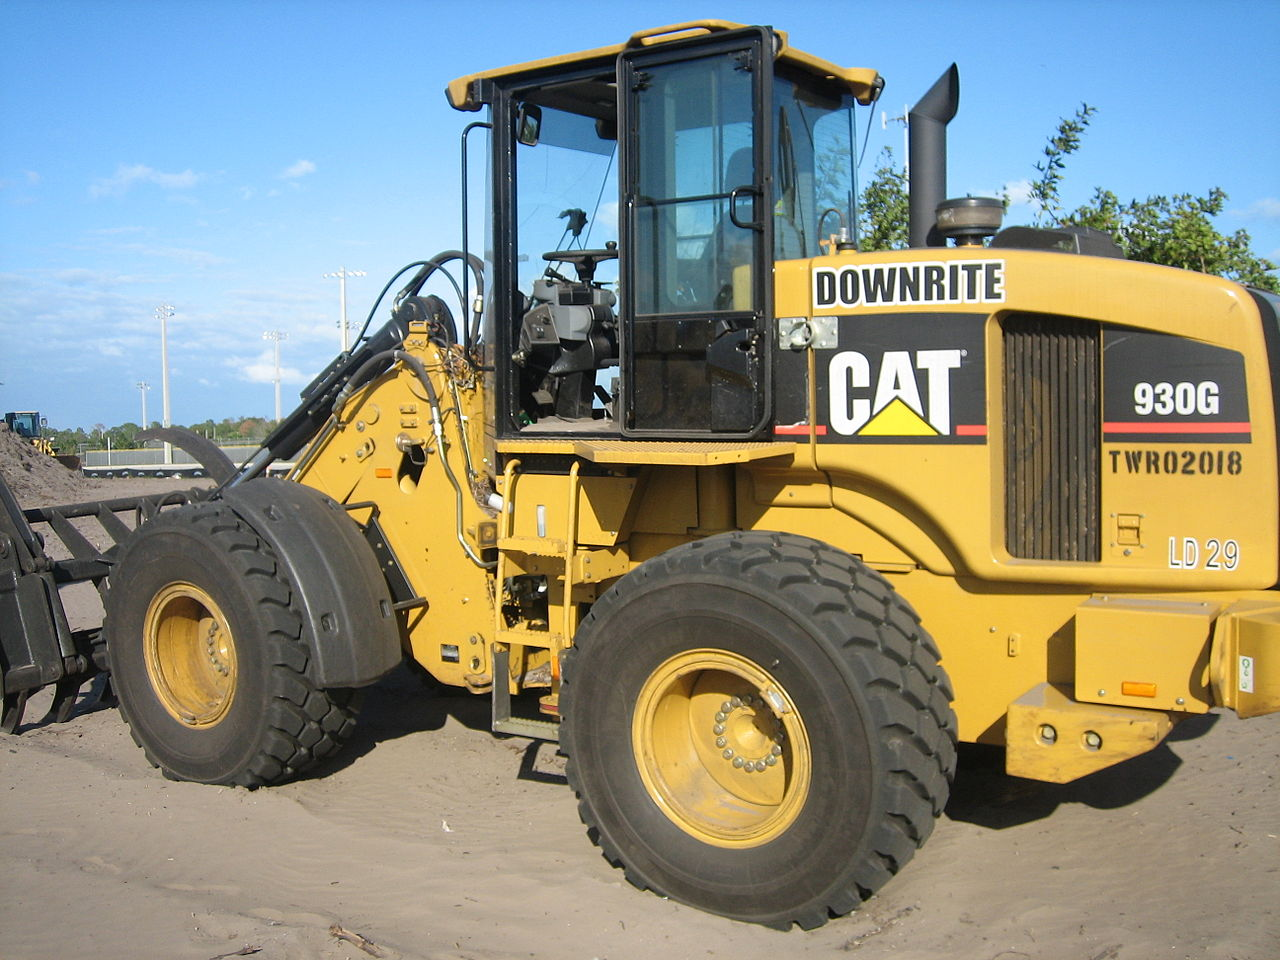 Used Cat Loaders For Sale In Tulare And Visalia